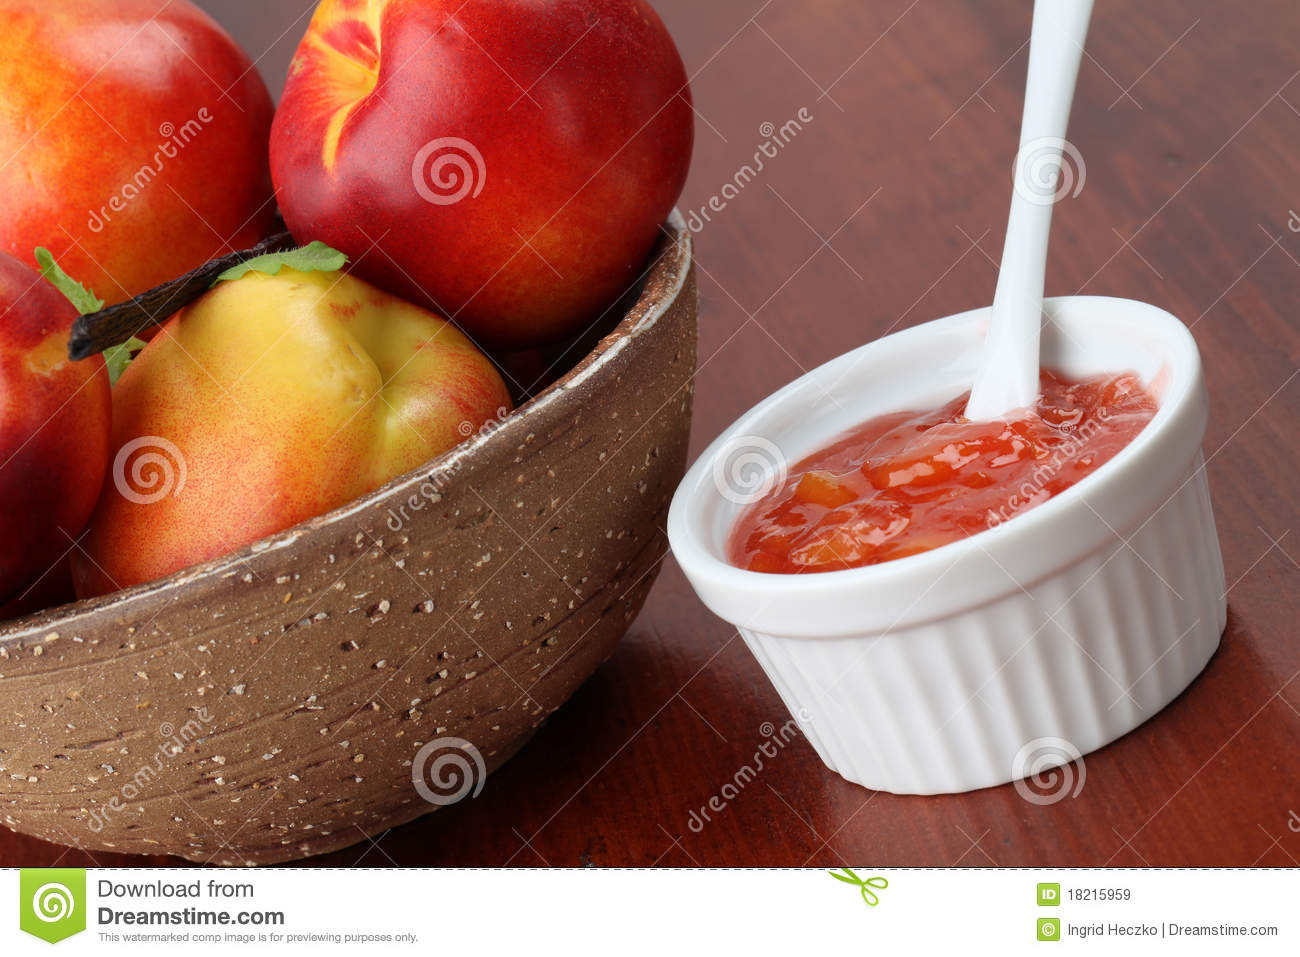 Nectarine jam in a white bowl and fresh nectarines.